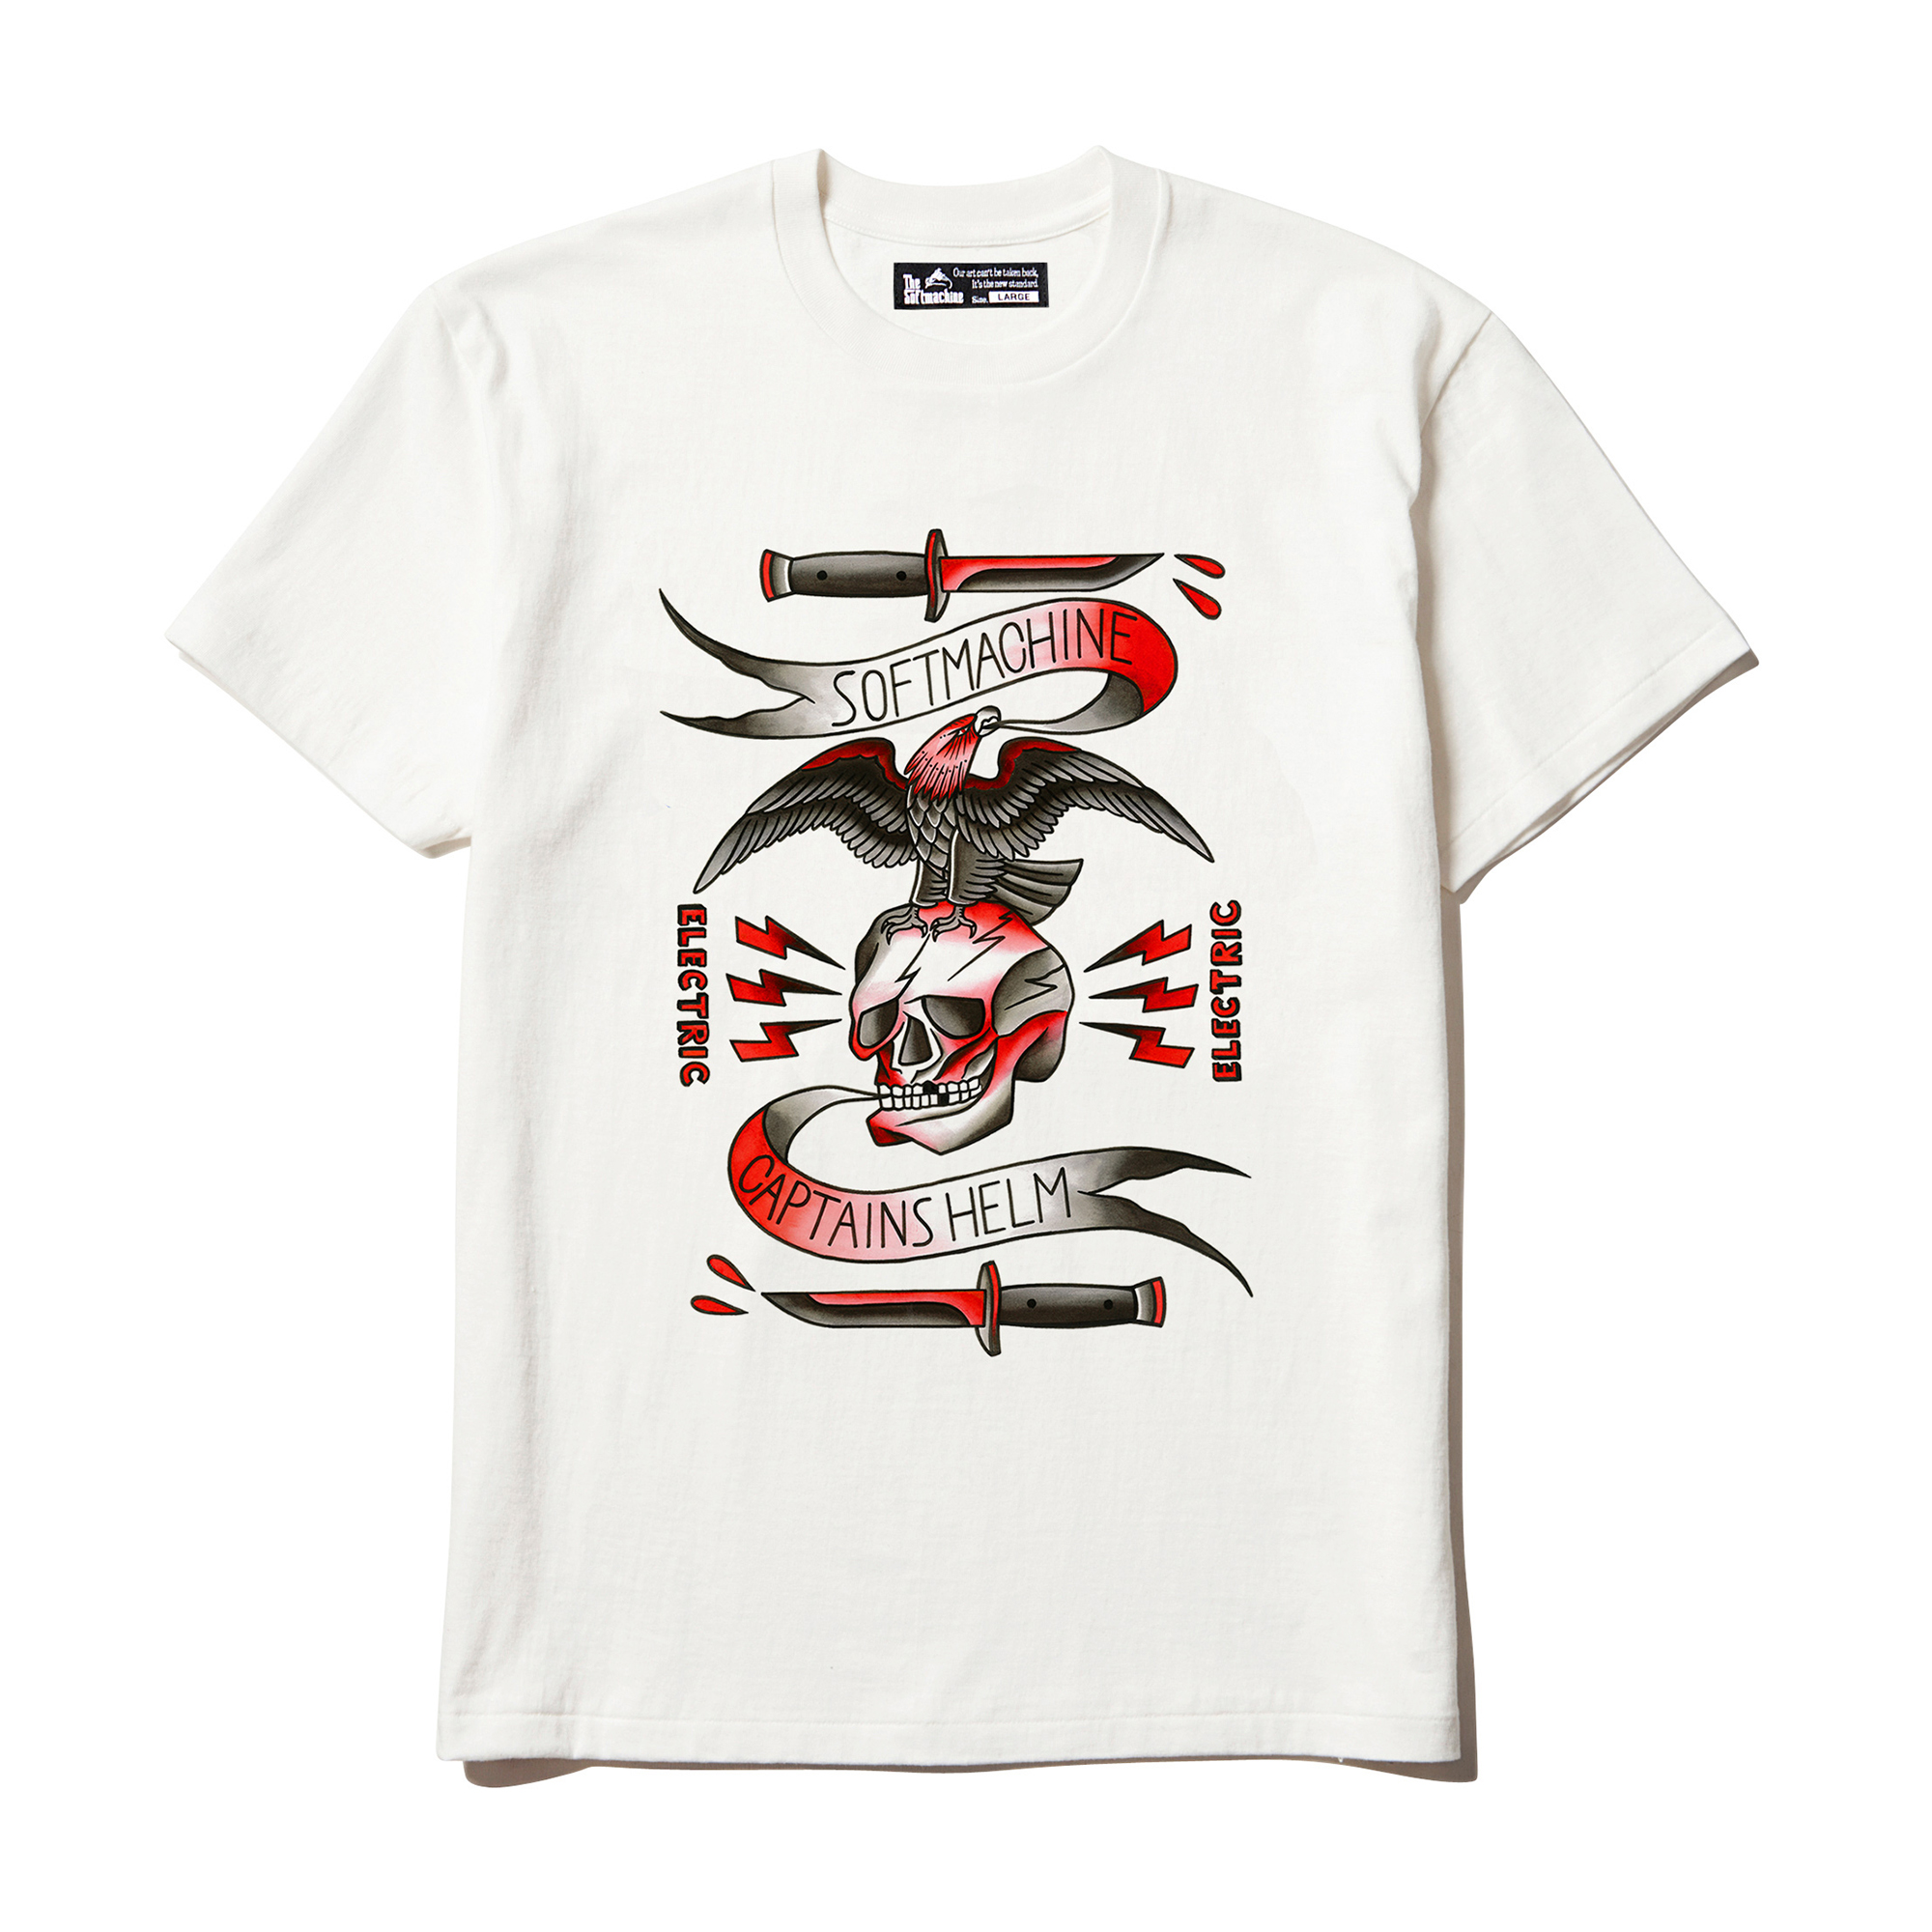 SOFTMACHINE × CAPTAINS HELM コラボレーション ELECTRIC TATTOO-T